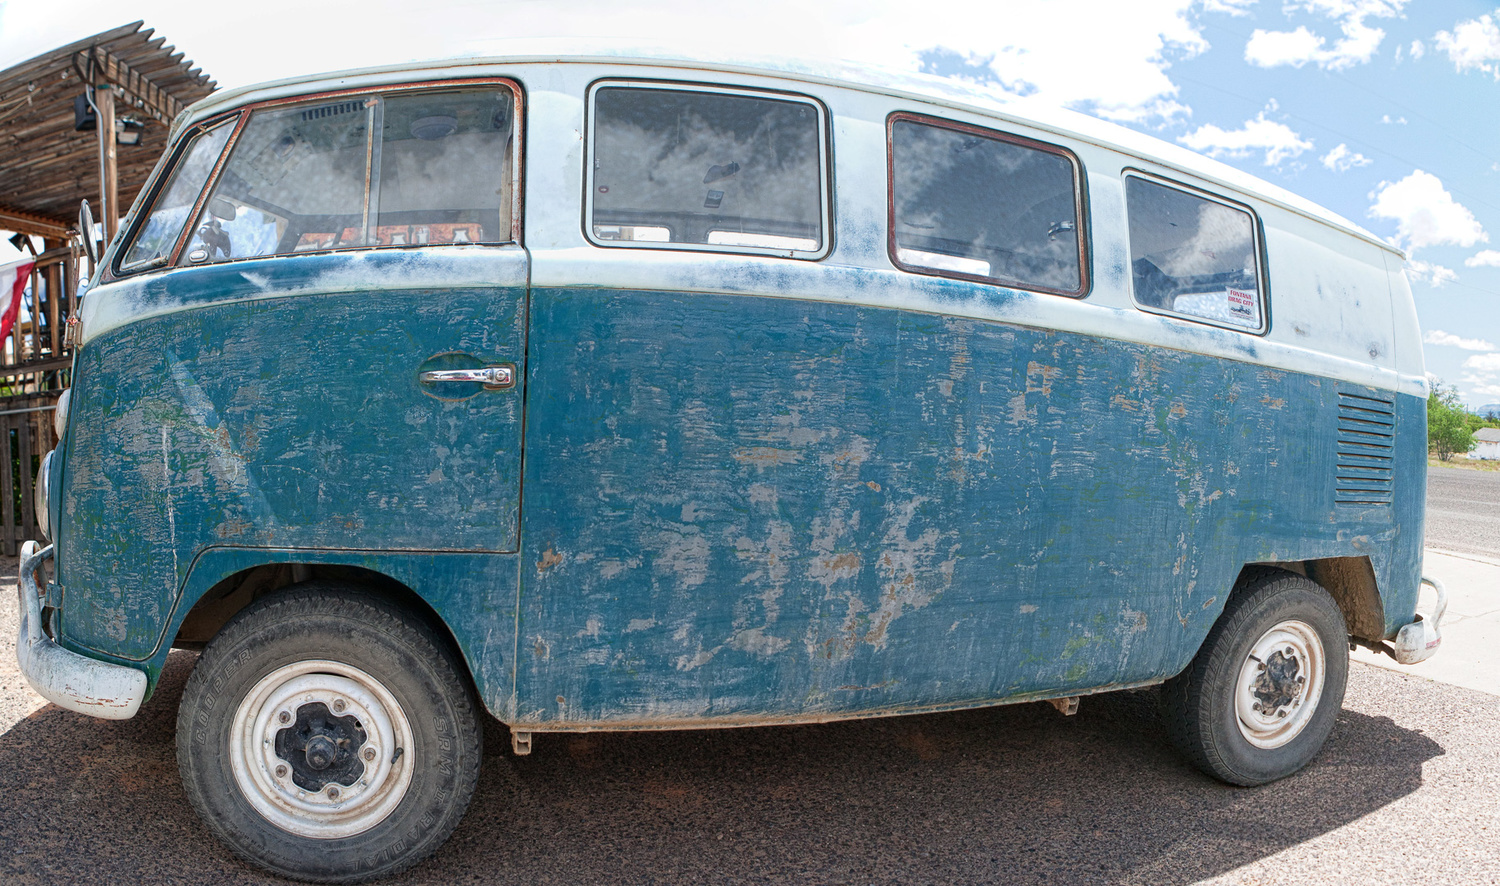 VW Bus with Perfect Patina by Gregory Scott